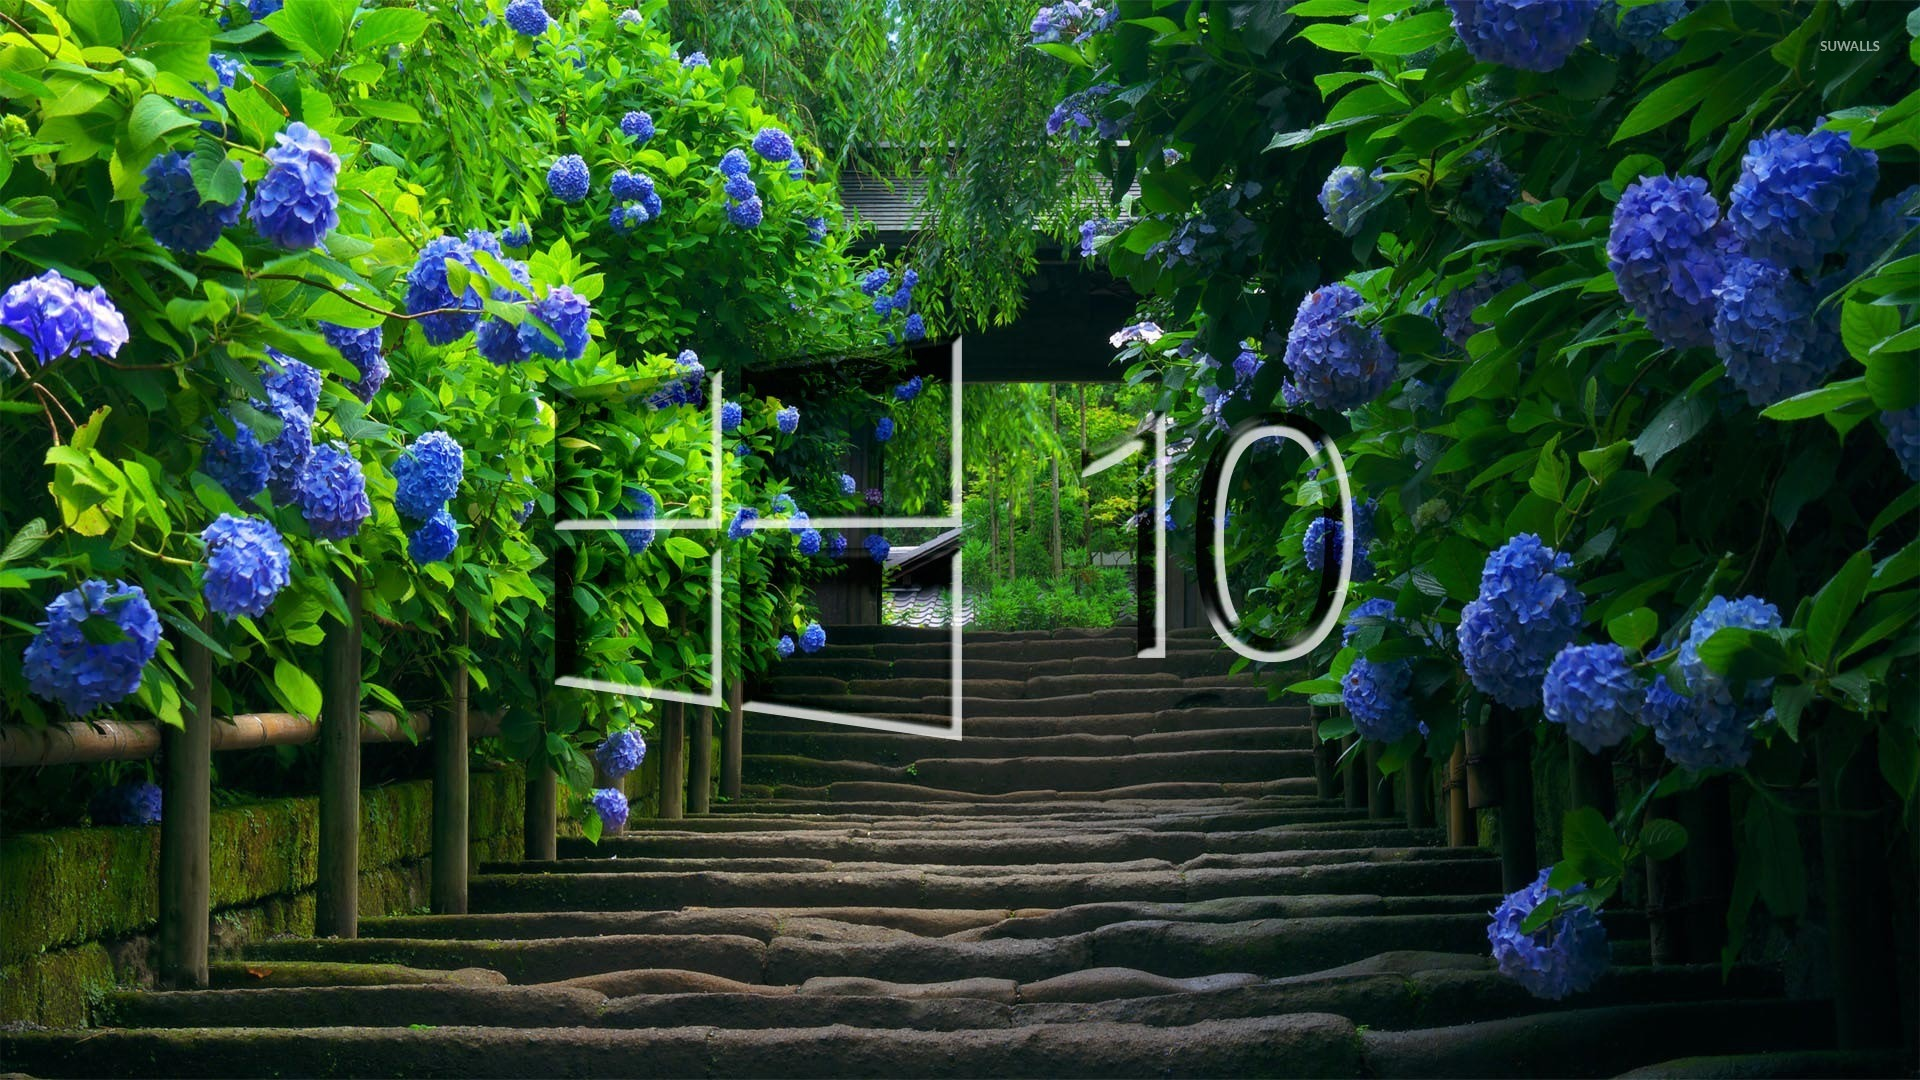 Windows 10 On Blue Hydrangeas [4] Wallpaper